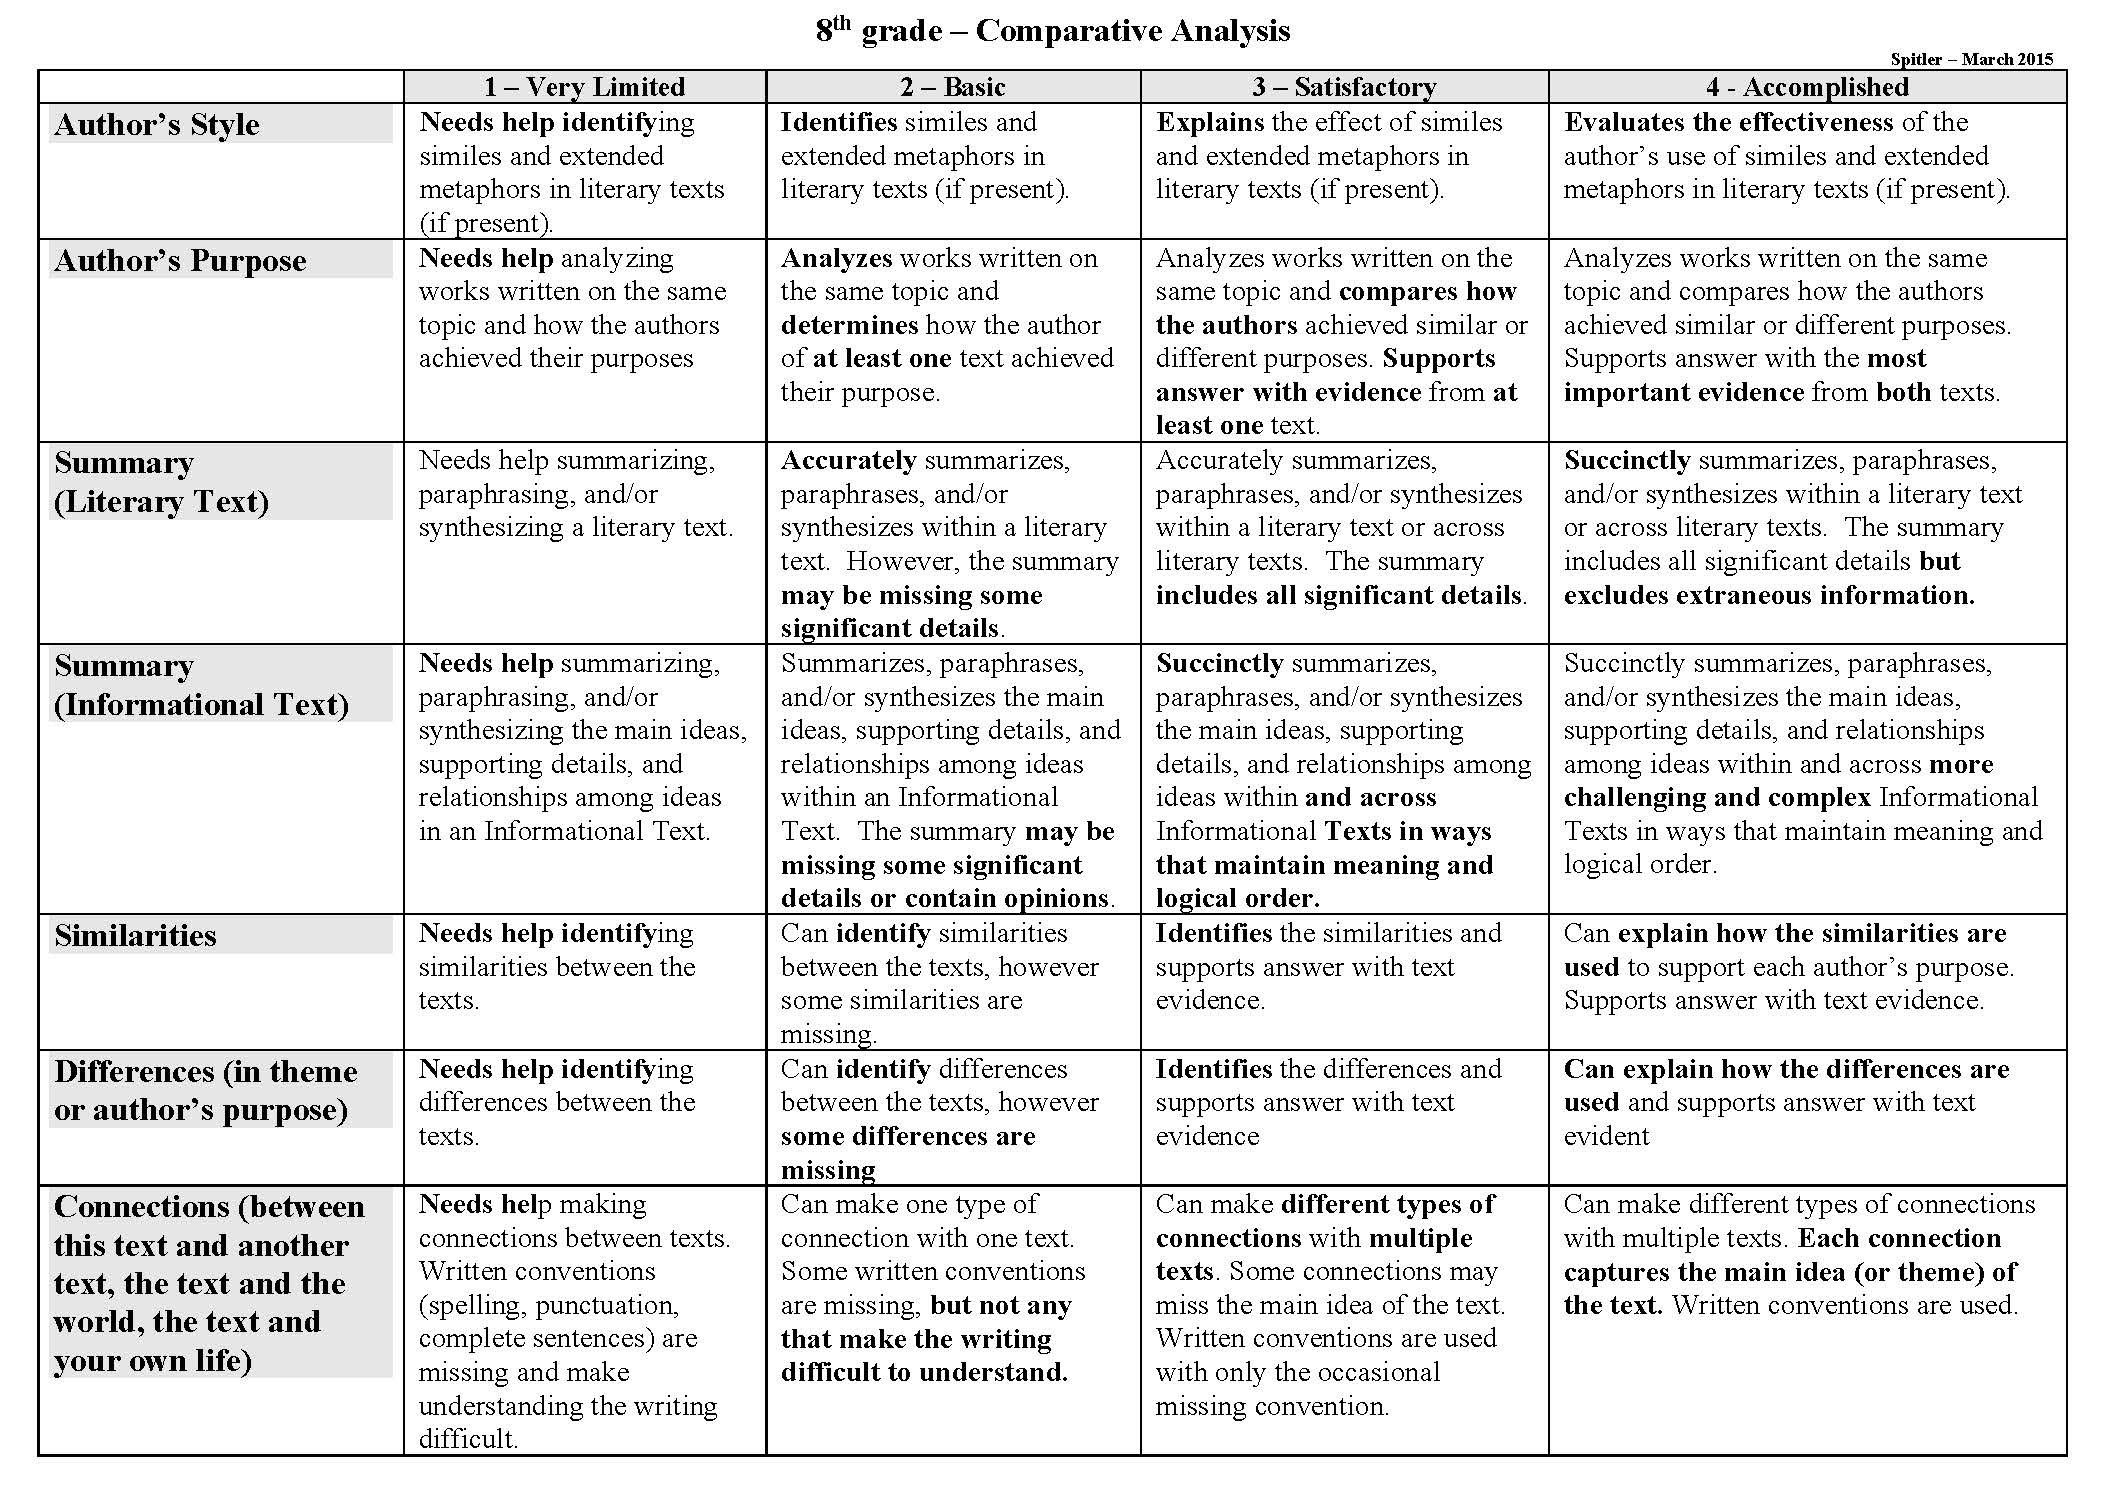 comparative essay rubric elementary Comparison-contrast essay rubric  typically, point-by-point, like the  student model on pages 425-426, is easier for middle school.